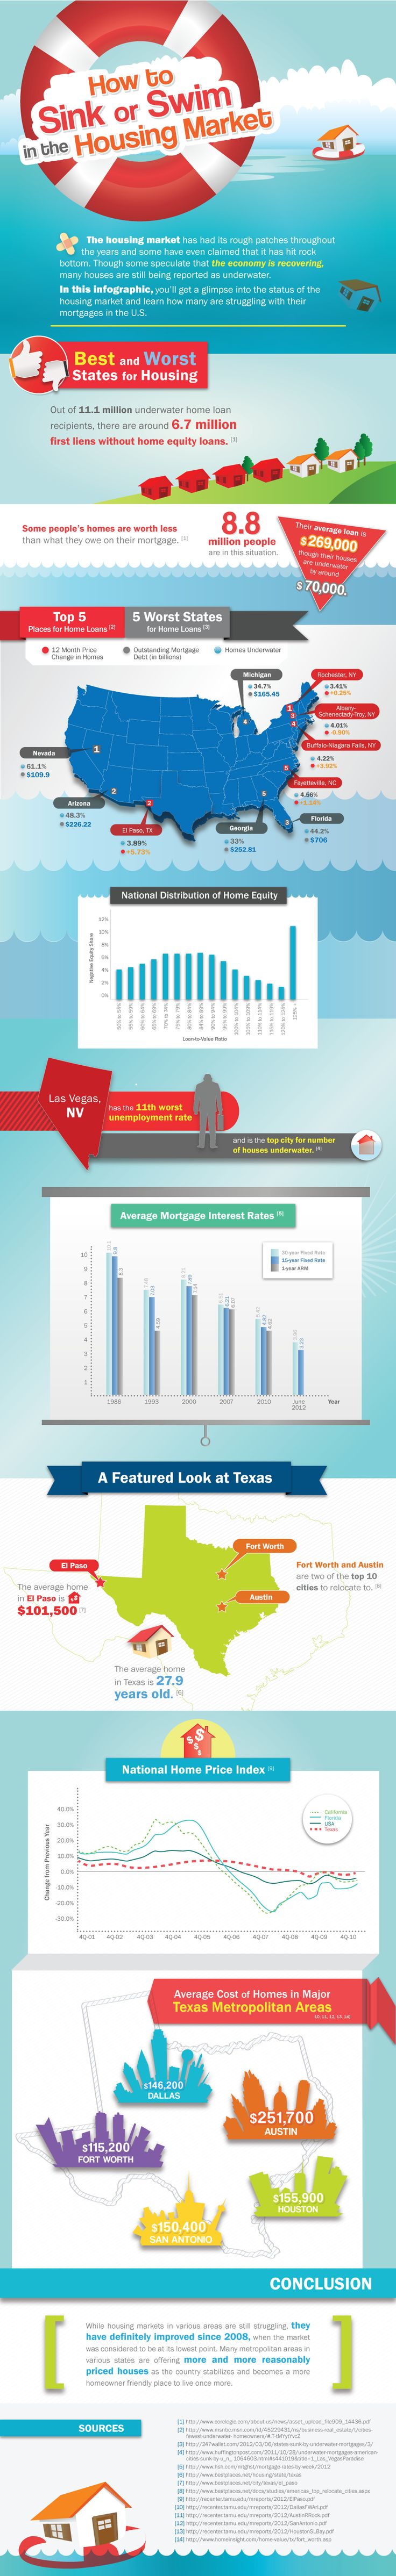 Payday loans in fort worth photo 3